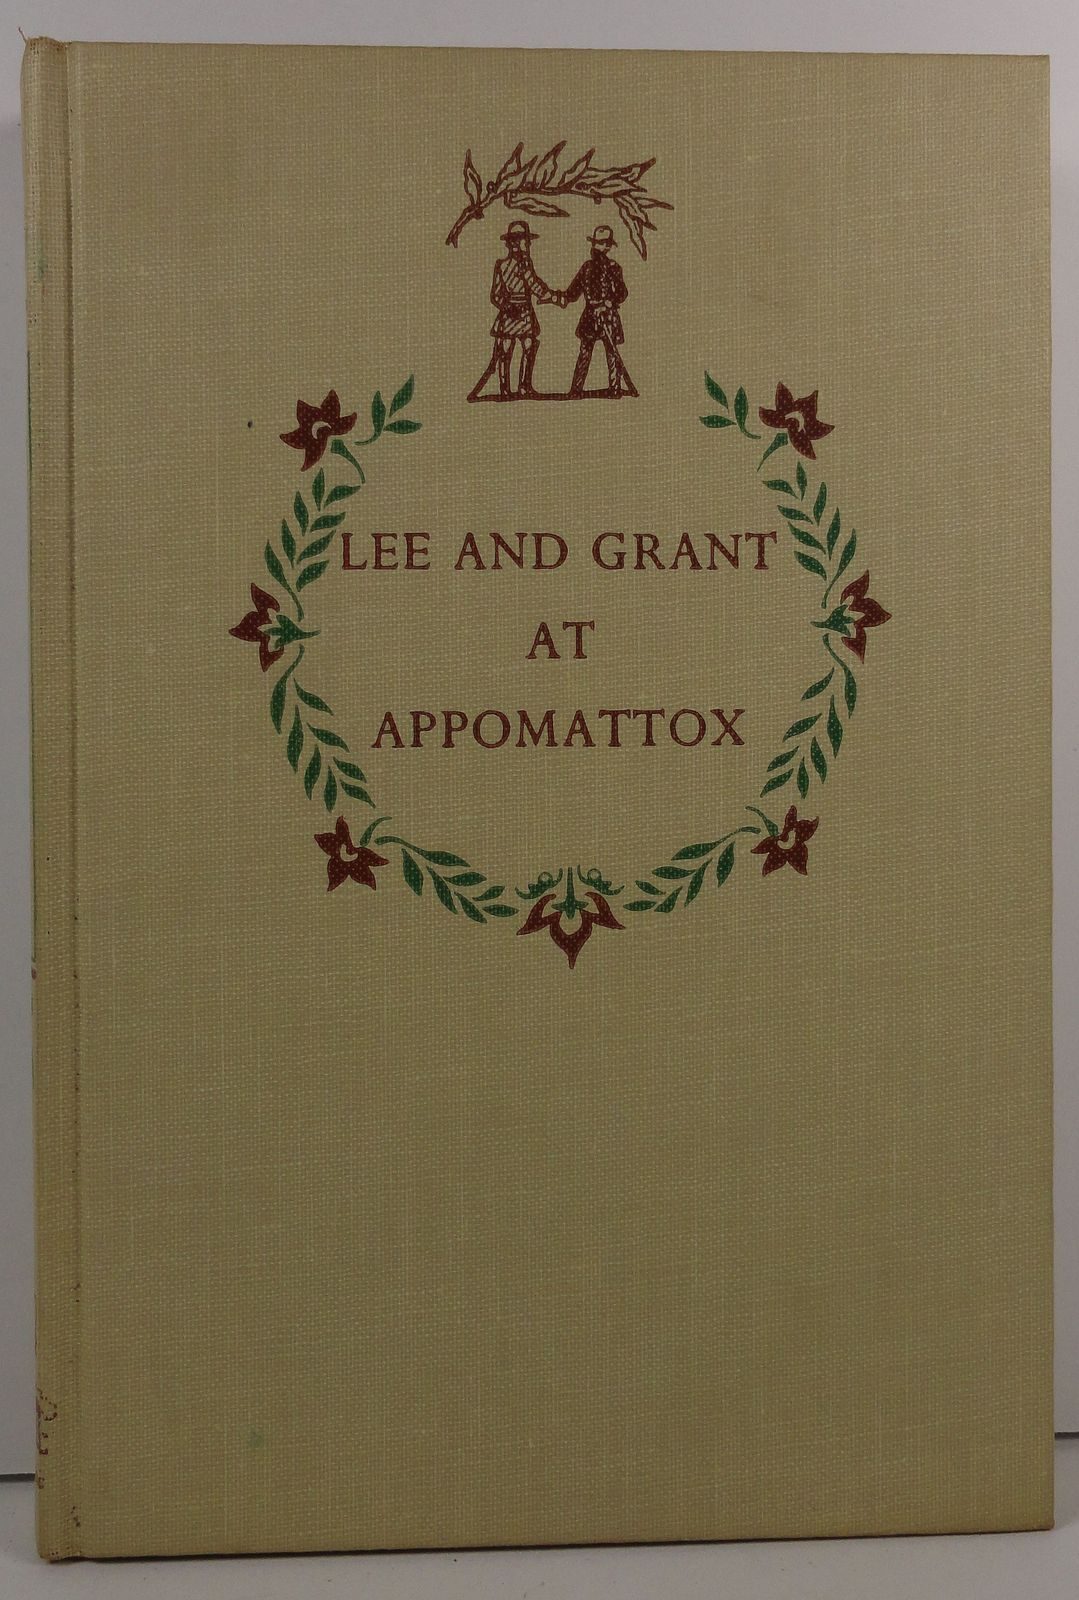 Lee and Grant at Appomattox by MacKinlay Kantor Landmark 8